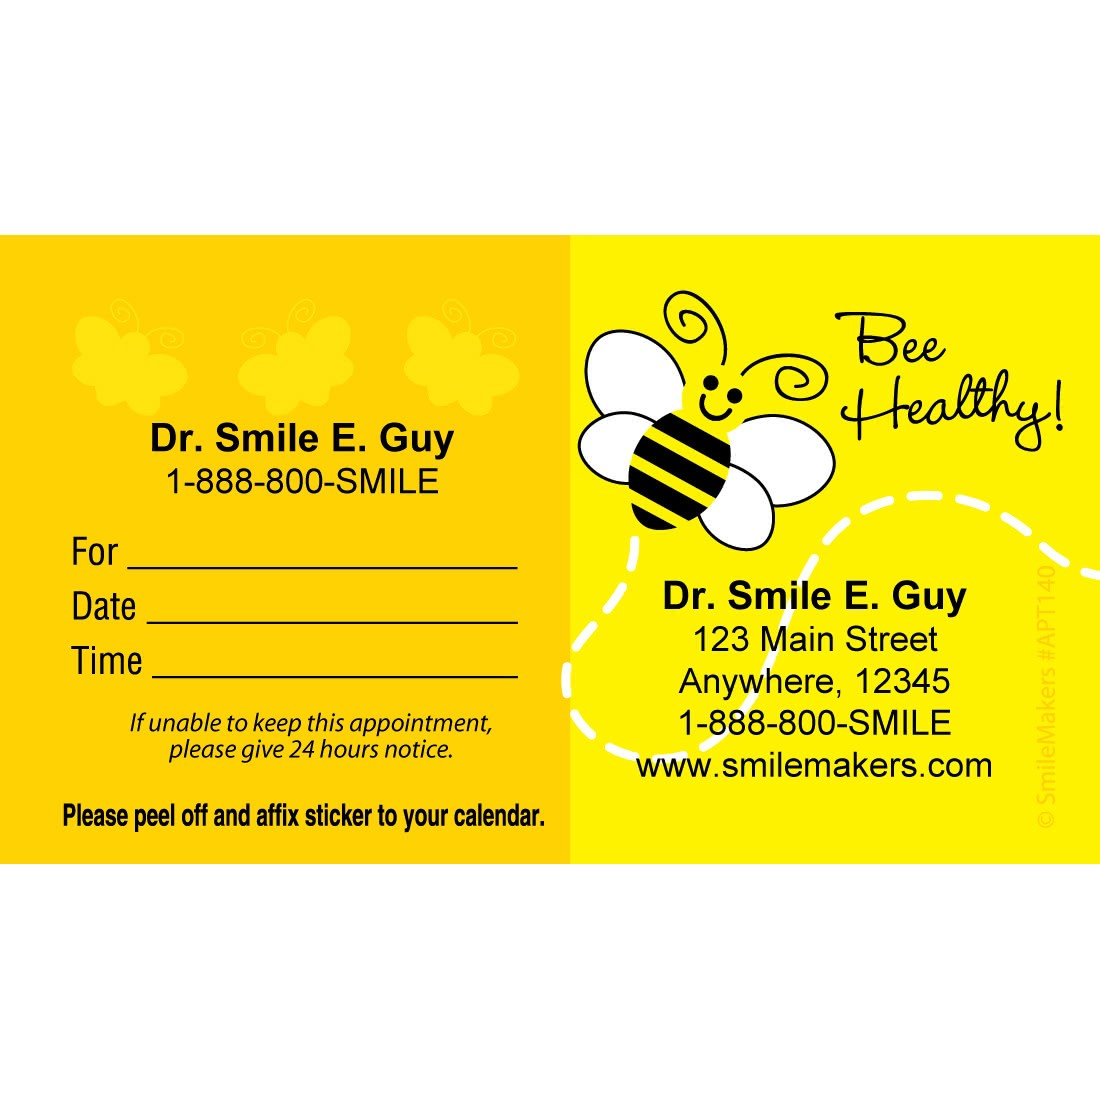 Custom Bee Healthy Appointment Cards [image]